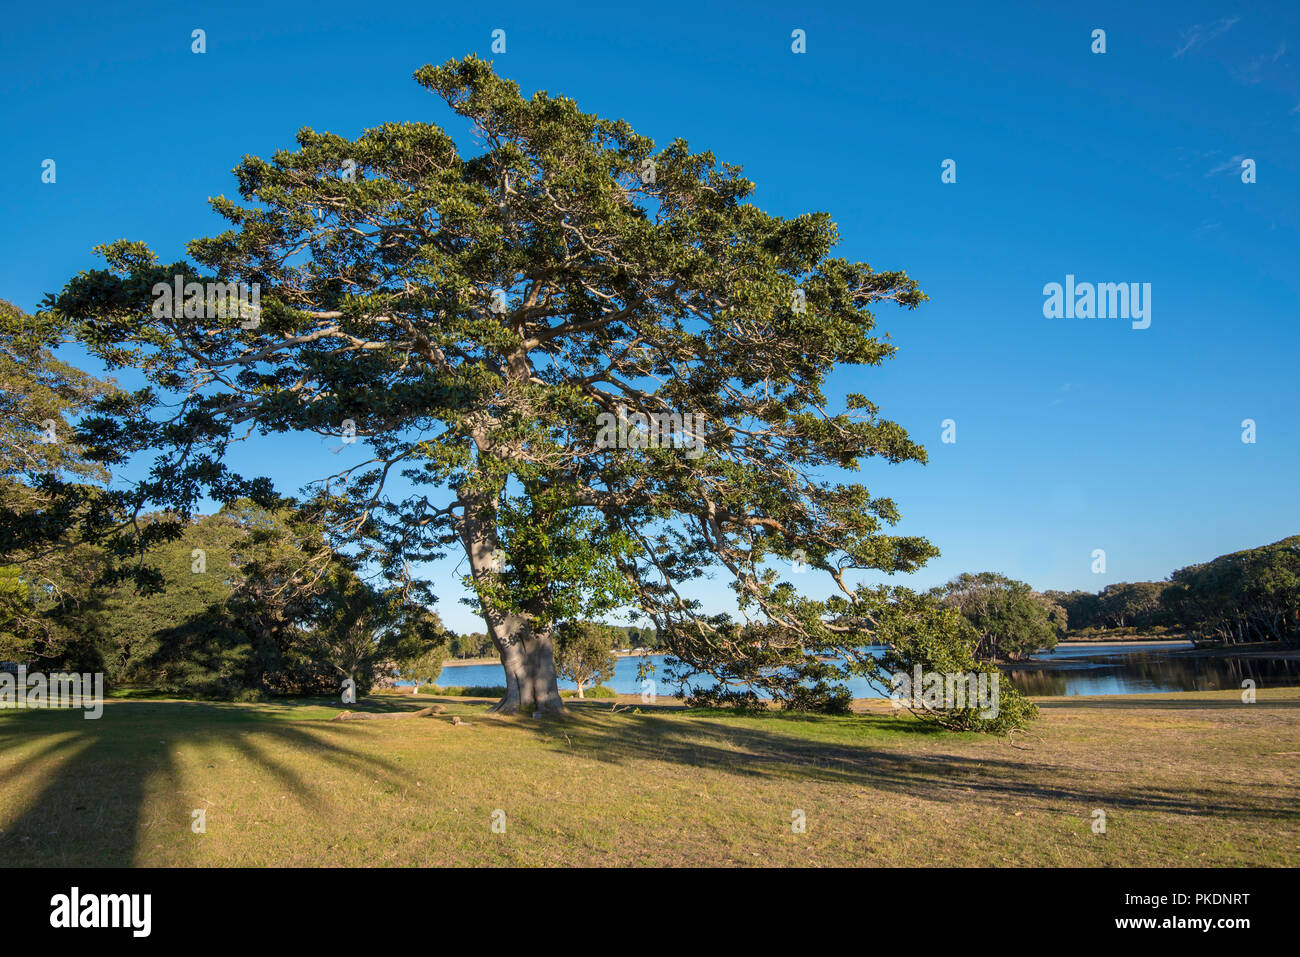 An open field and a large mature Port Jackson Fig (Ficus rubiginosa) in the morning sunlight in Centennial Park, Sydney Australia. - Stock Image